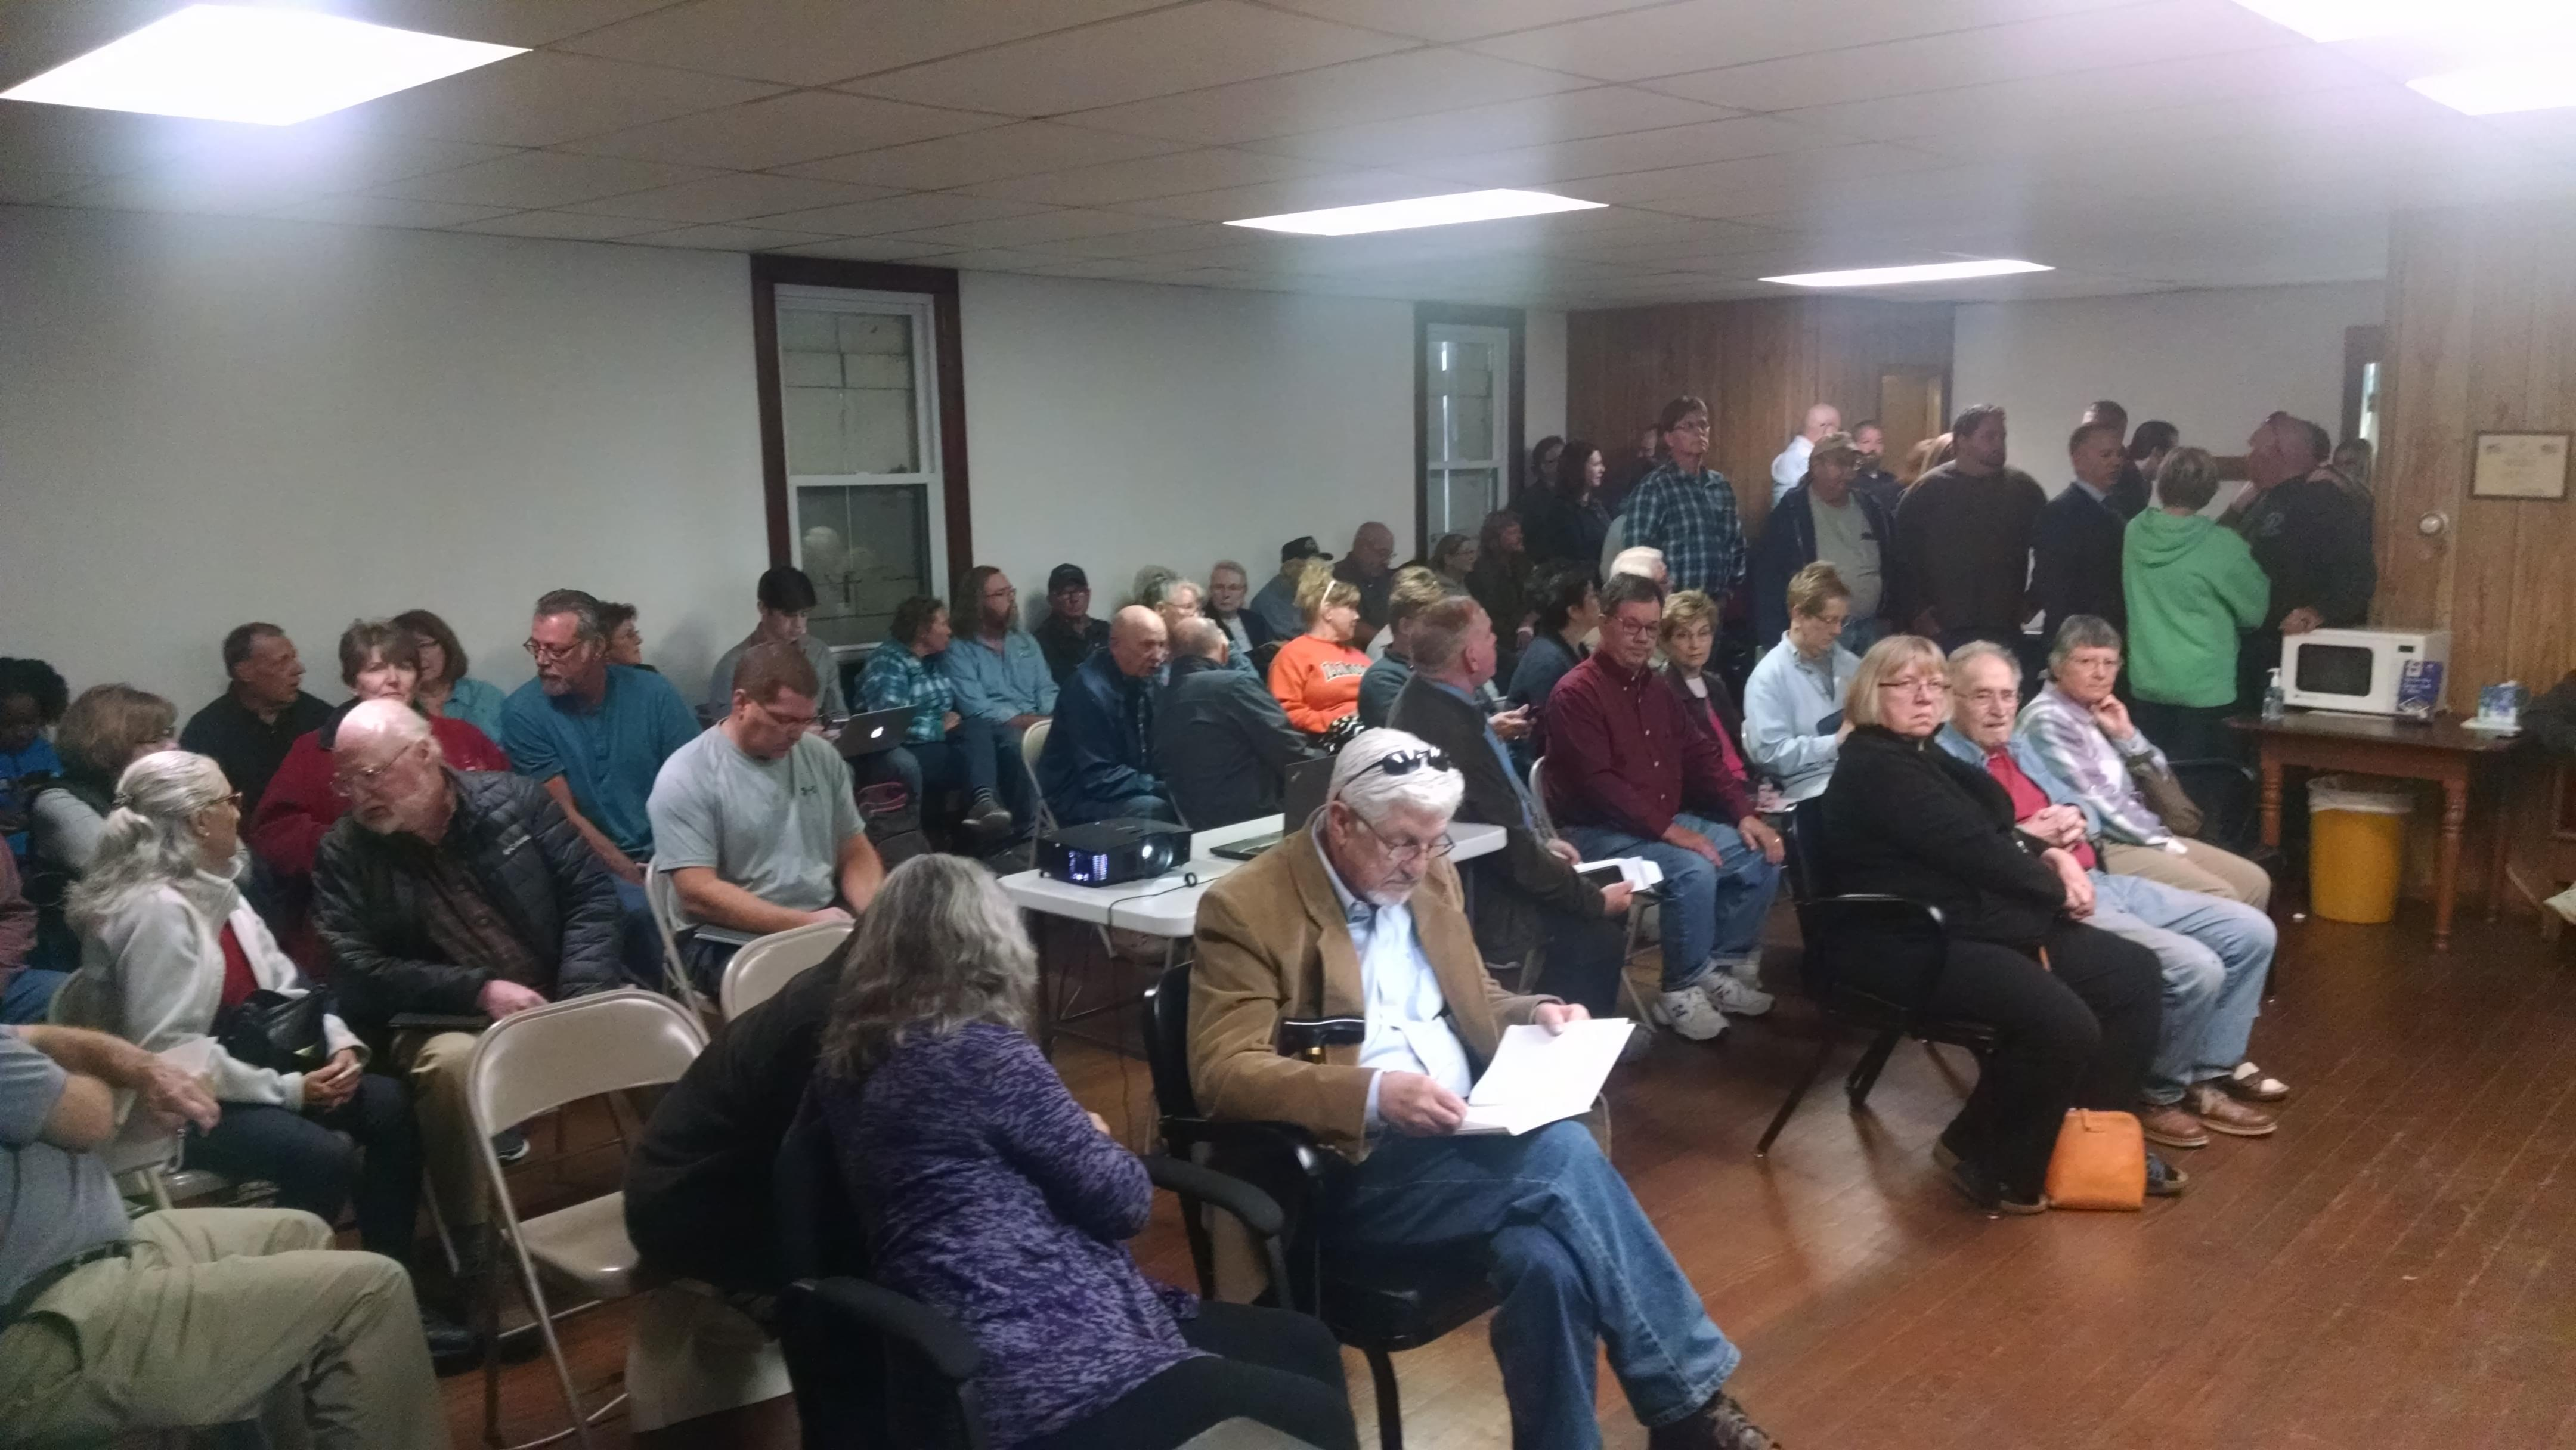 Over 100 people attended an informational meeting Monday night in Newcomb Township about a natural gas leak that contaminated five private water wells.